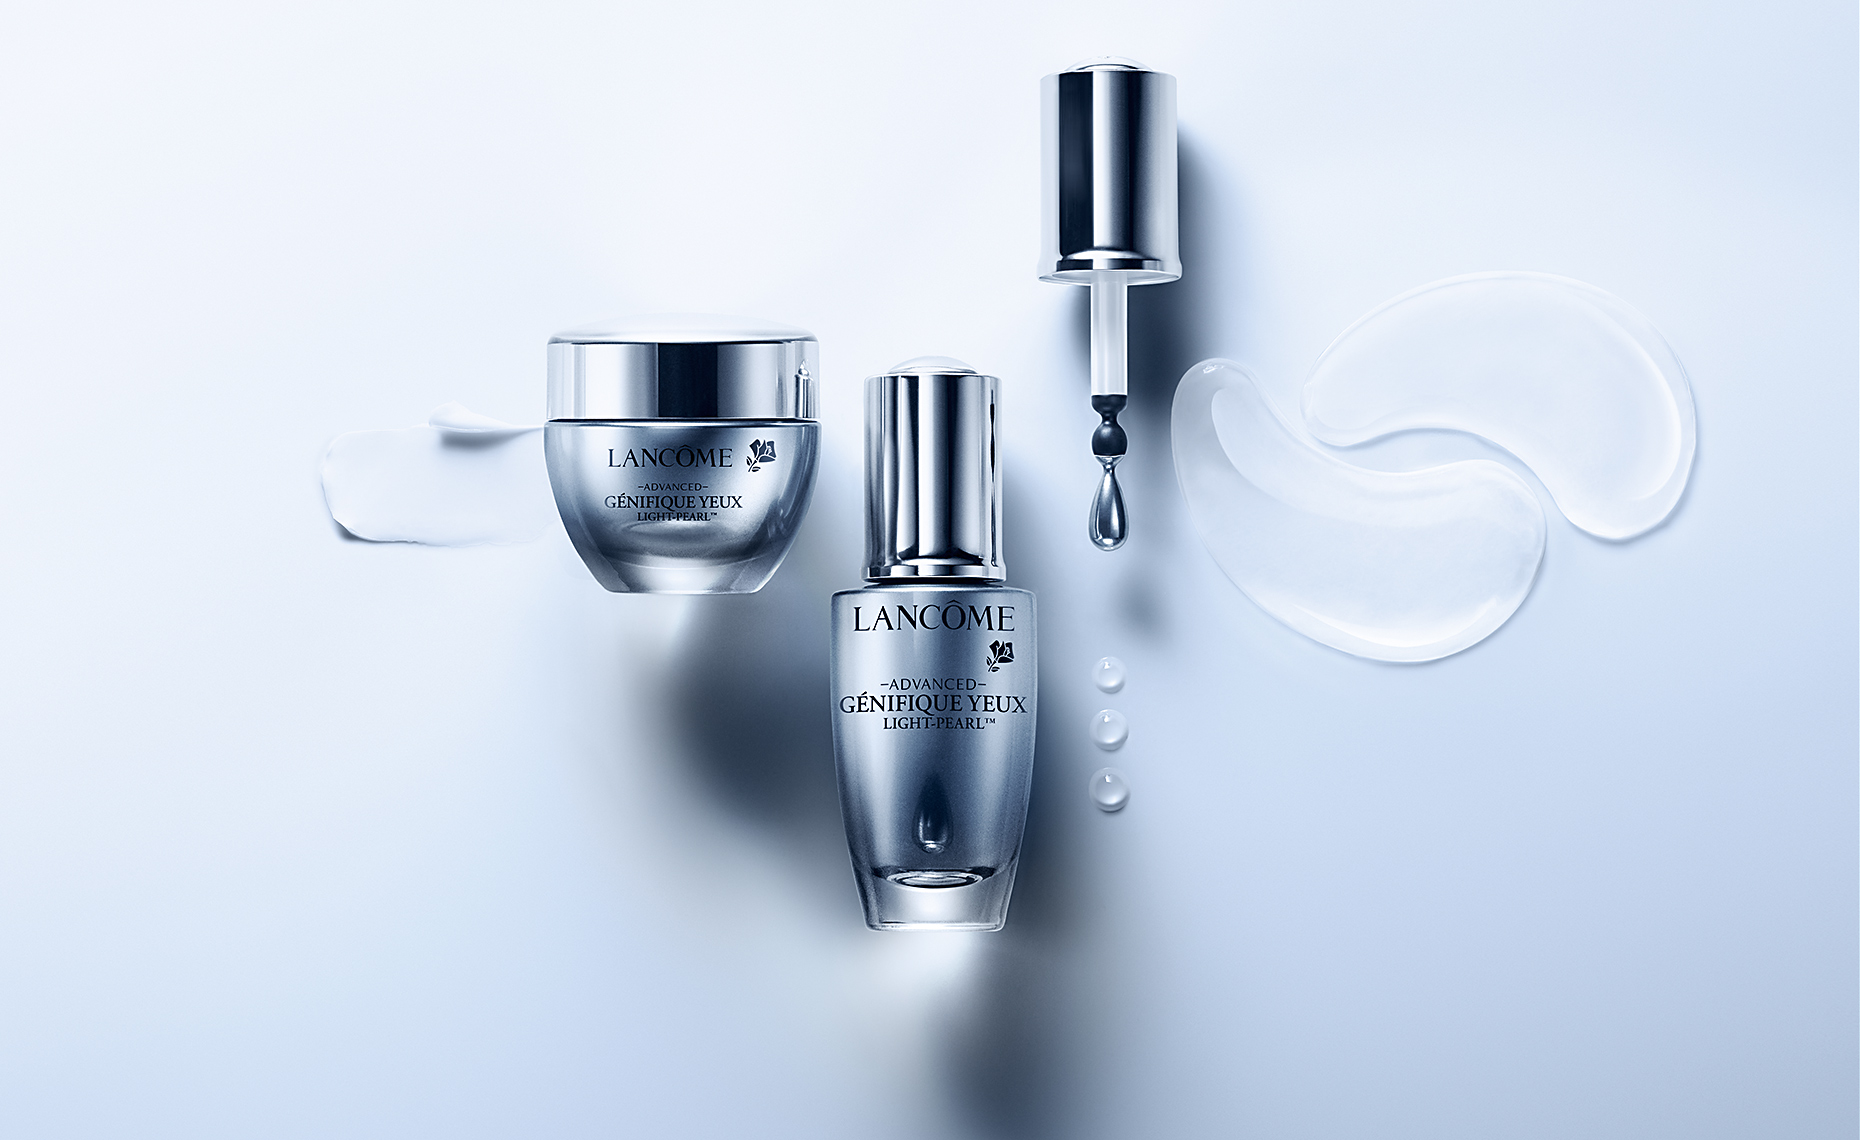 GENEFIQUE by LANCOME